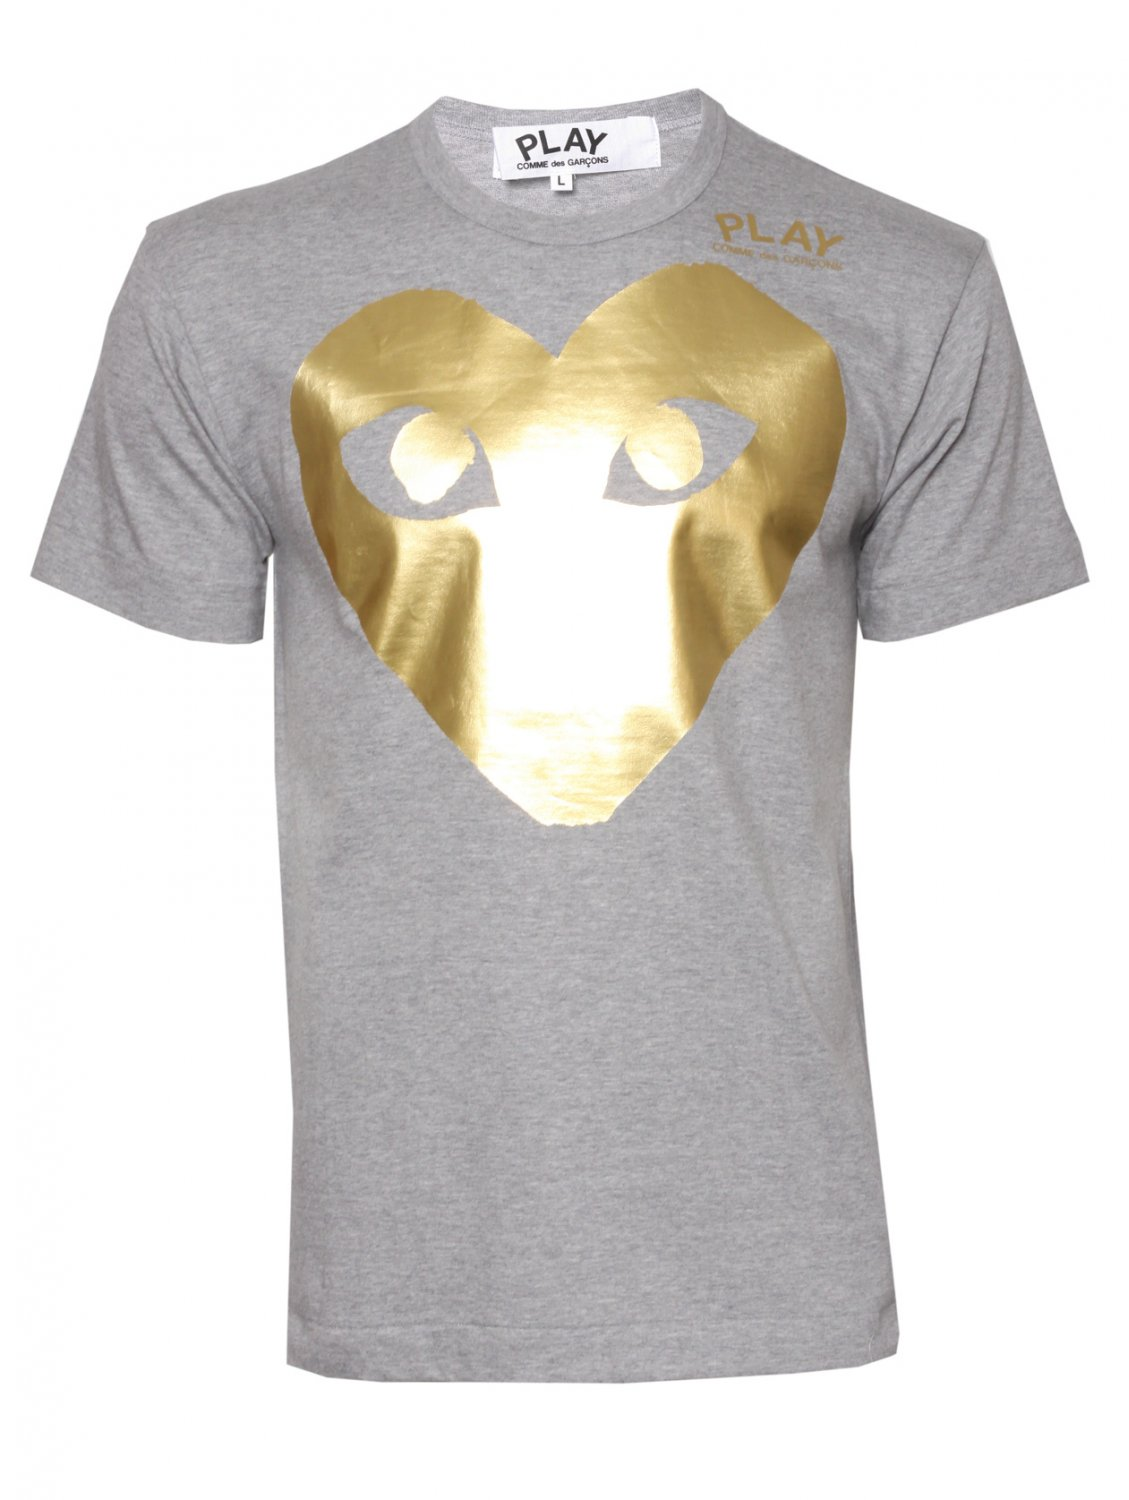 comme des gar ons play mens large gold heart t shirt grey. Black Bedroom Furniture Sets. Home Design Ideas